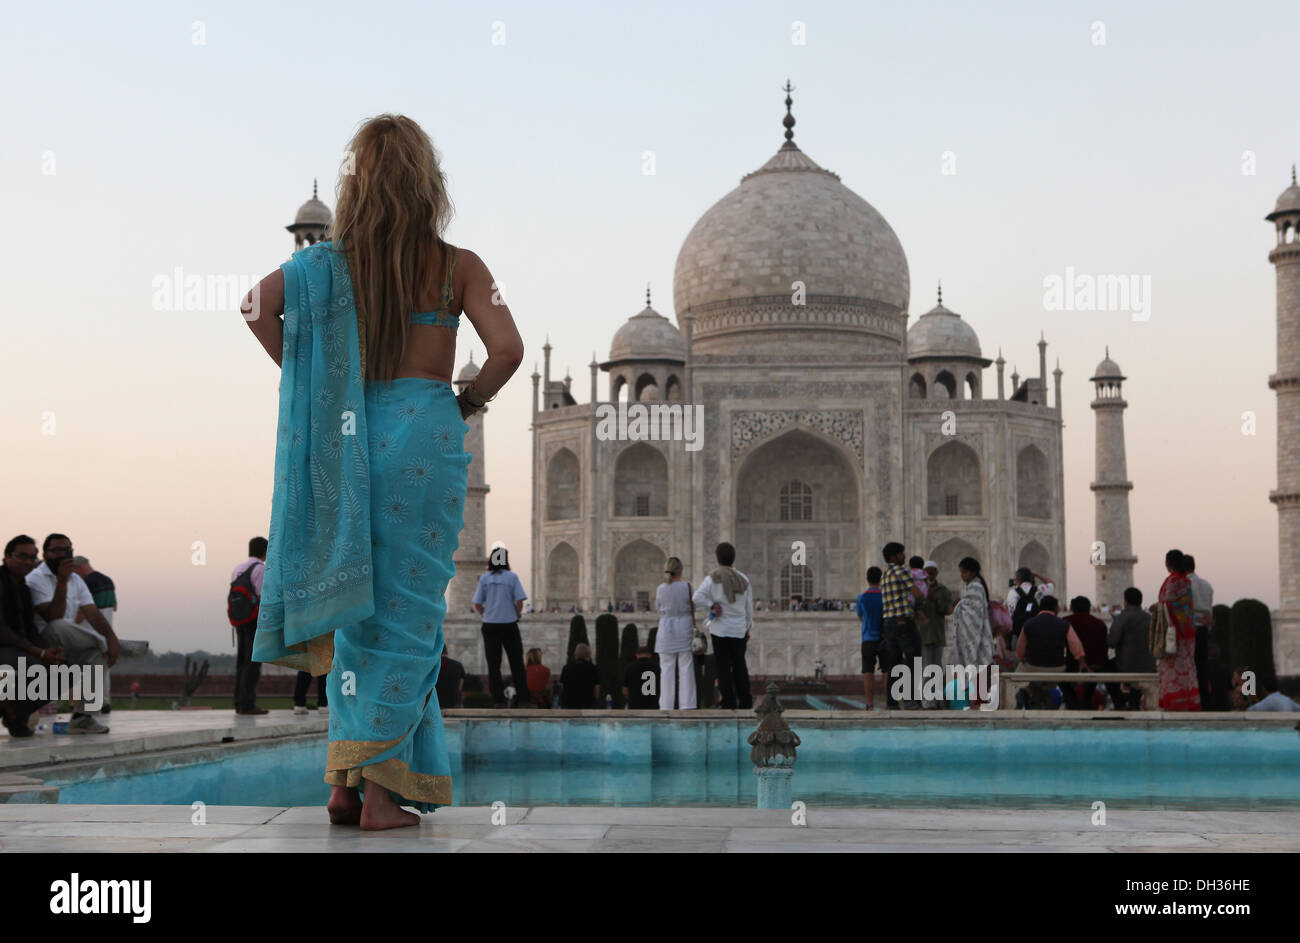 Tourists in front of the Taj Mahal, Agra, Uttar Pradesh, India, Asia - Stock Image